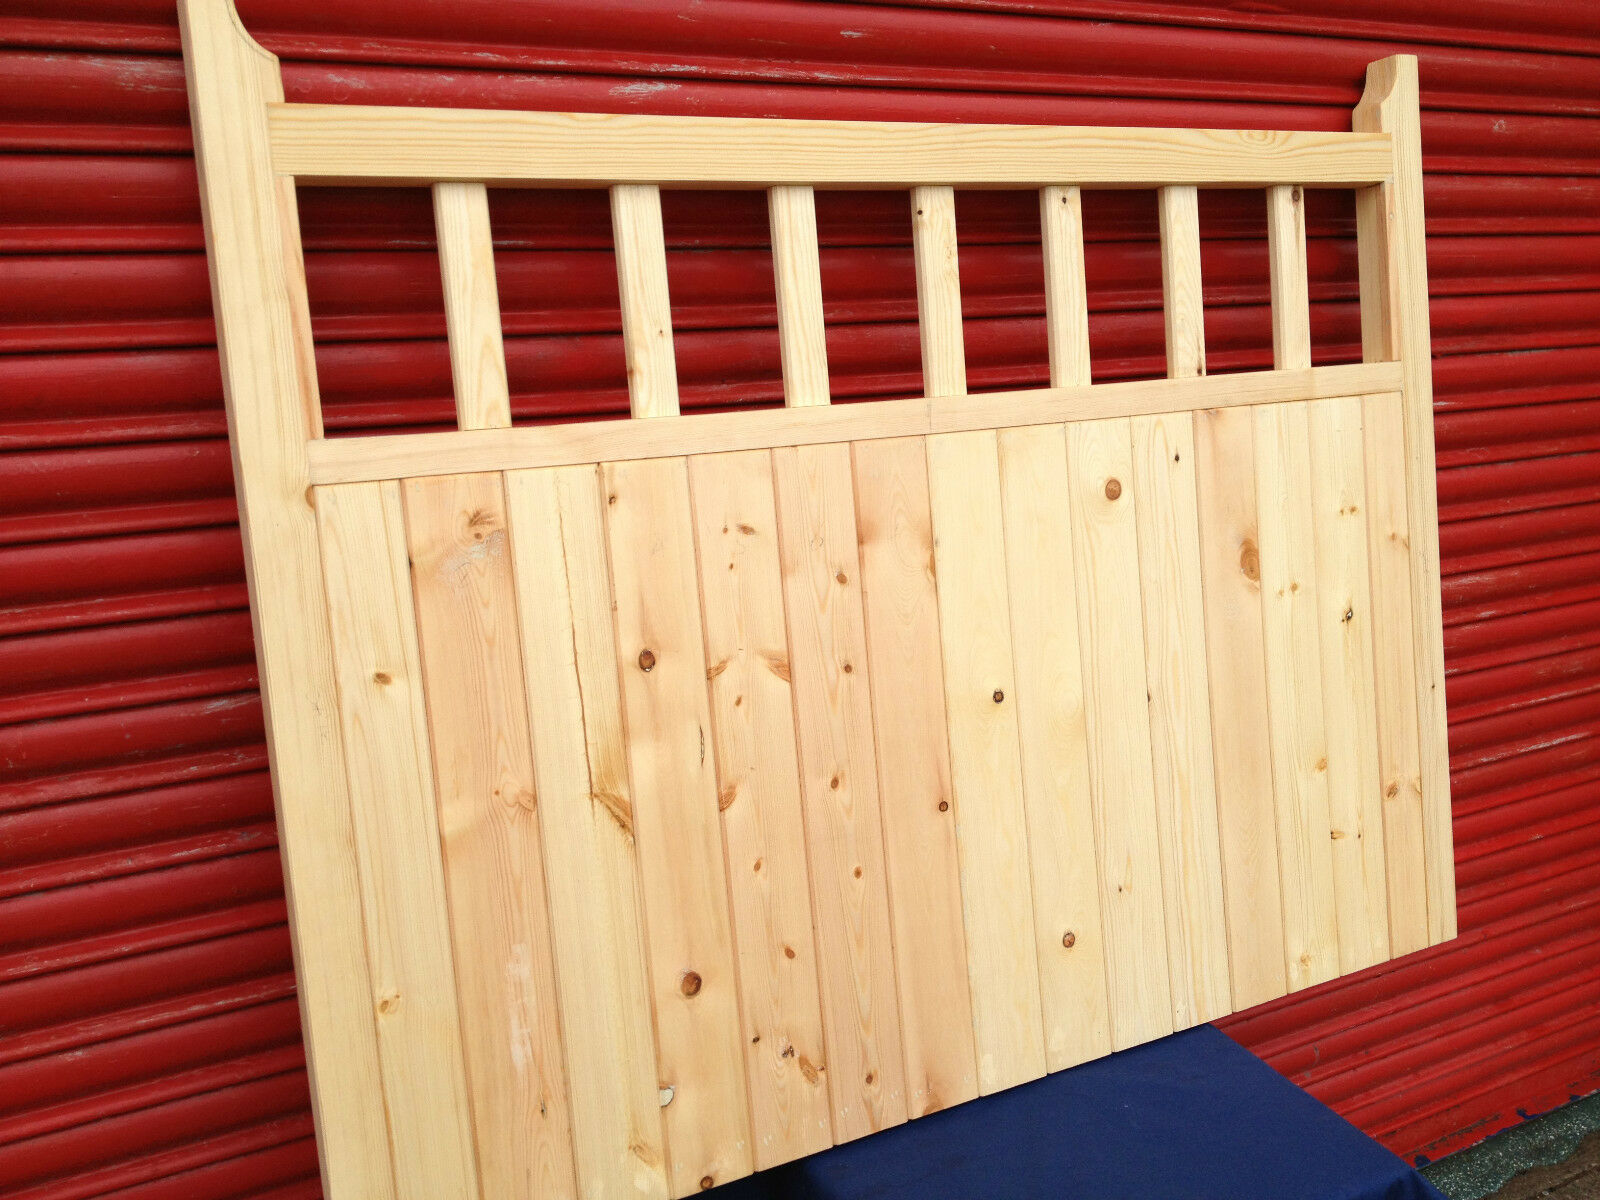 Superb img of  of wooden timber driveway gates bespoke products made to measure!!! 9 with #BA7F11 color and 1600x1200 pixels